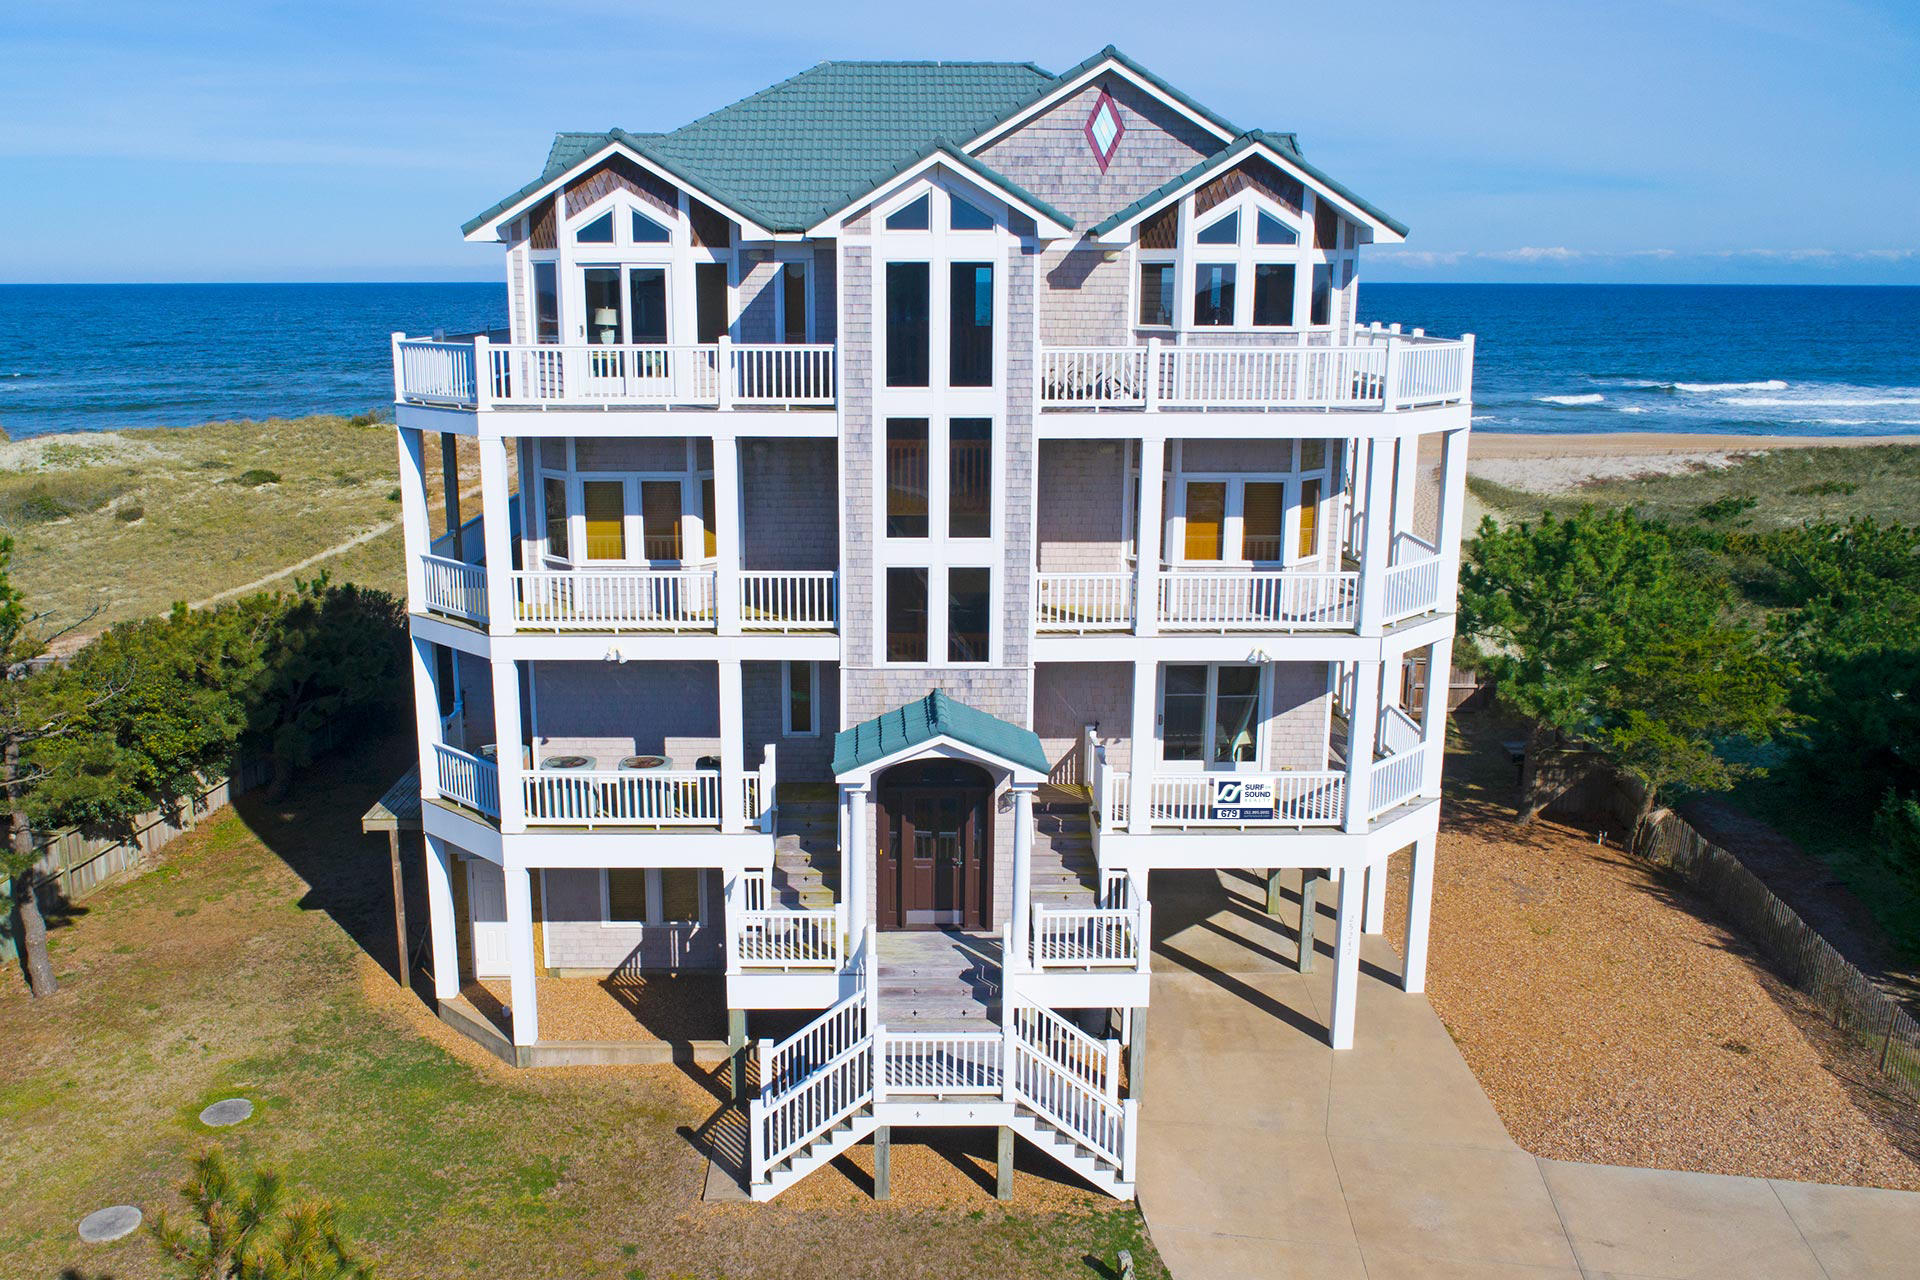 Sea Glass 679 8 Bedroom Ocean Front Home In Waves Obx Nc